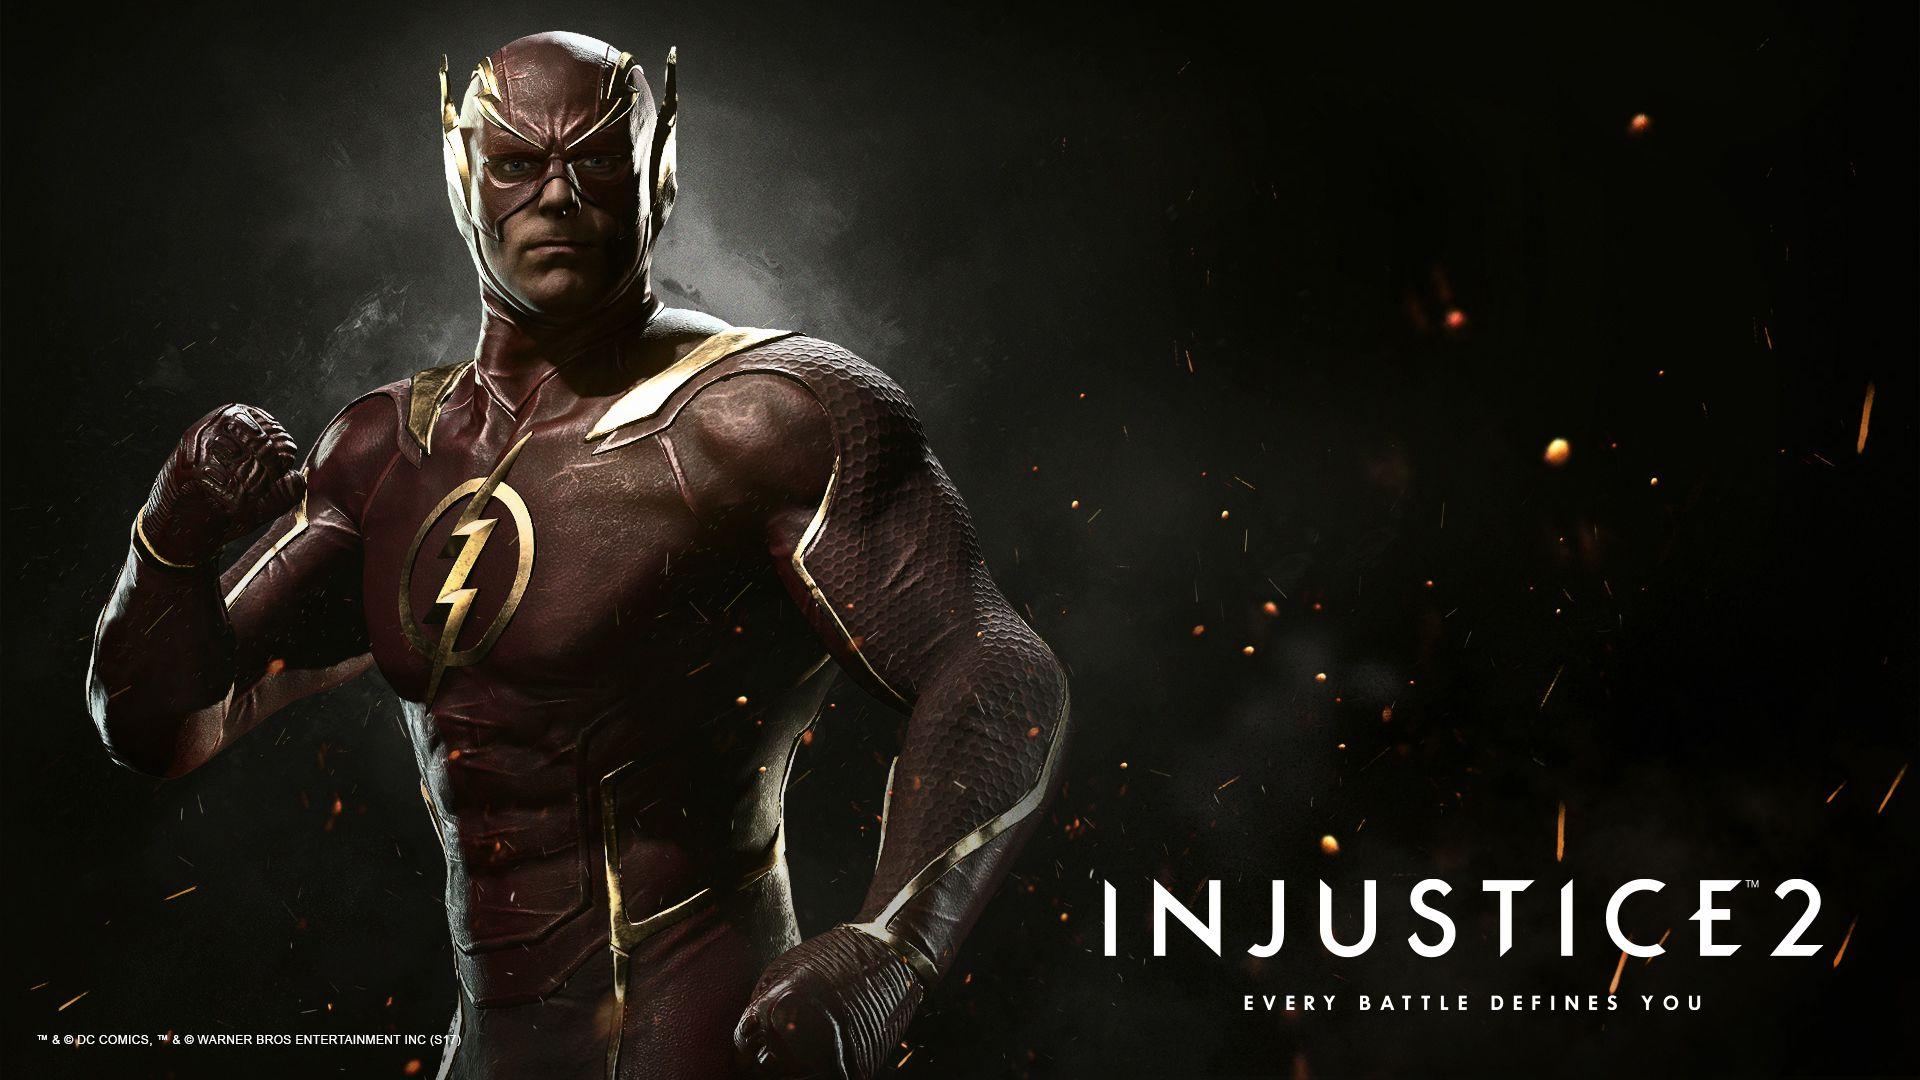 The Flash Injustice 2 Wallpaper 0001